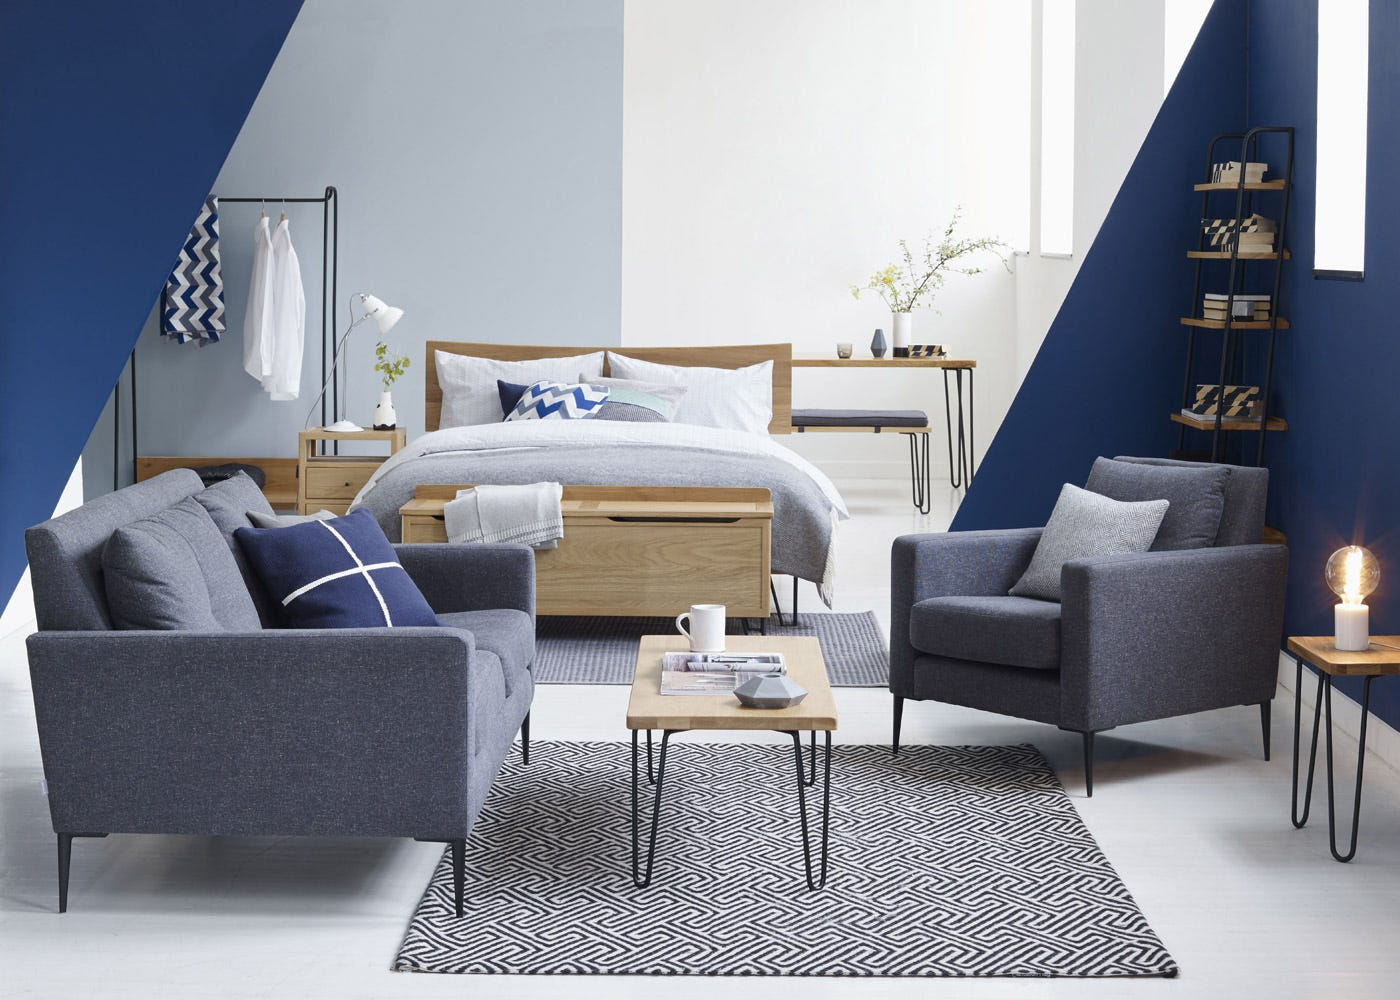 As shown: The Brunel Armchair alongside the 2 Seater Sofa, both in Murcia Grey